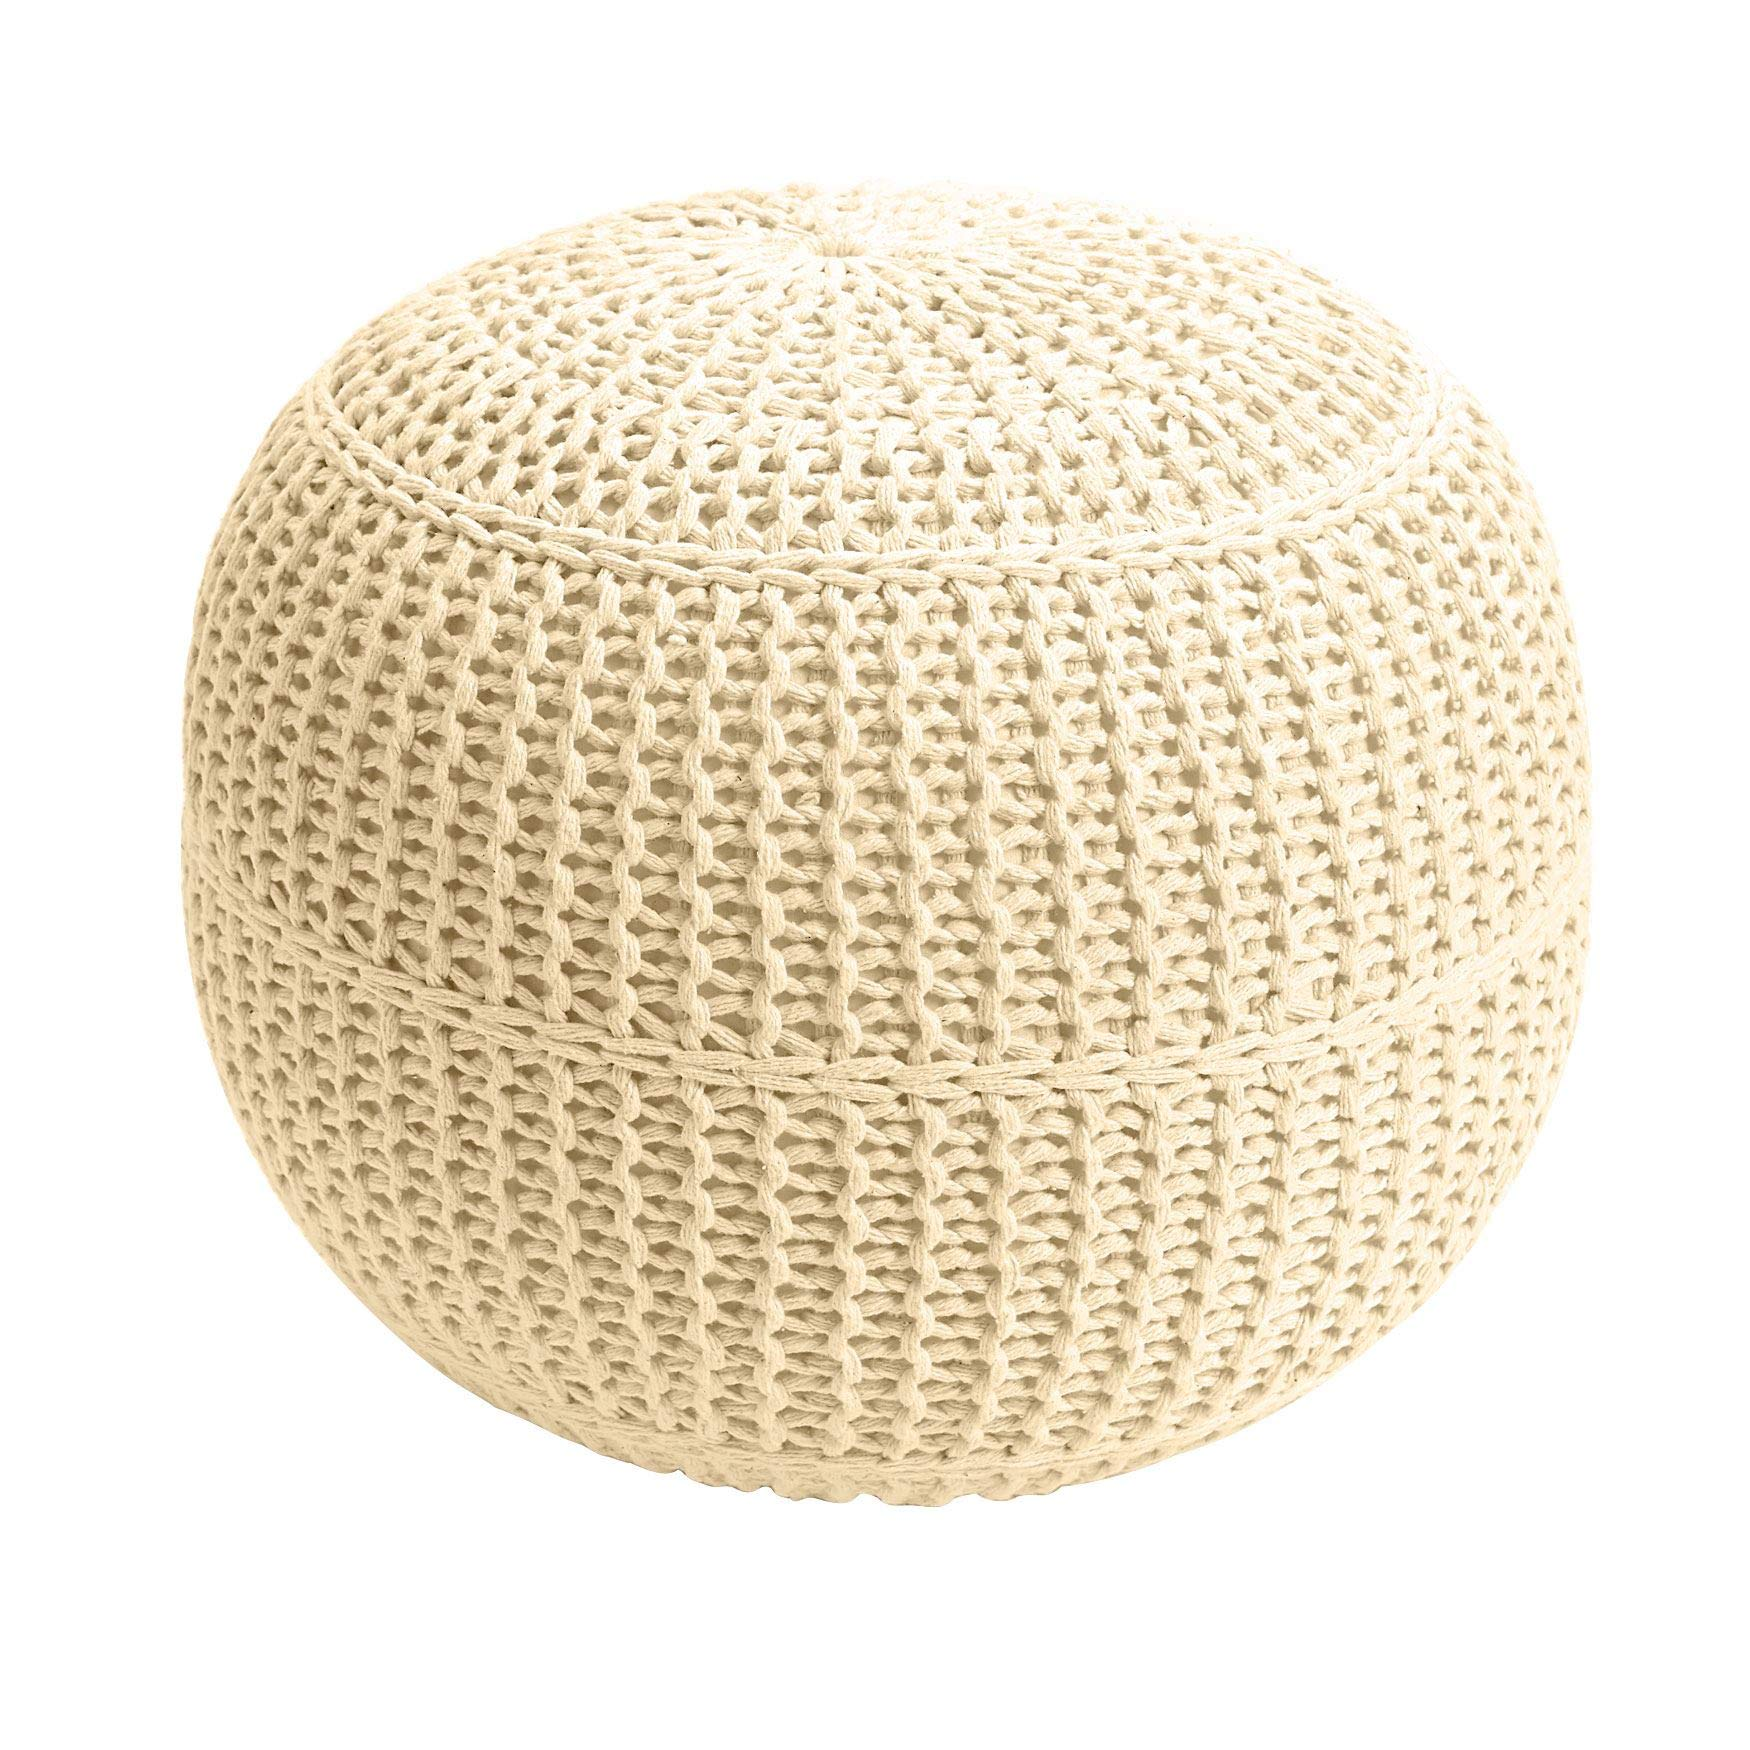 Crochet Pouf Filling Only New Crochet Patterns